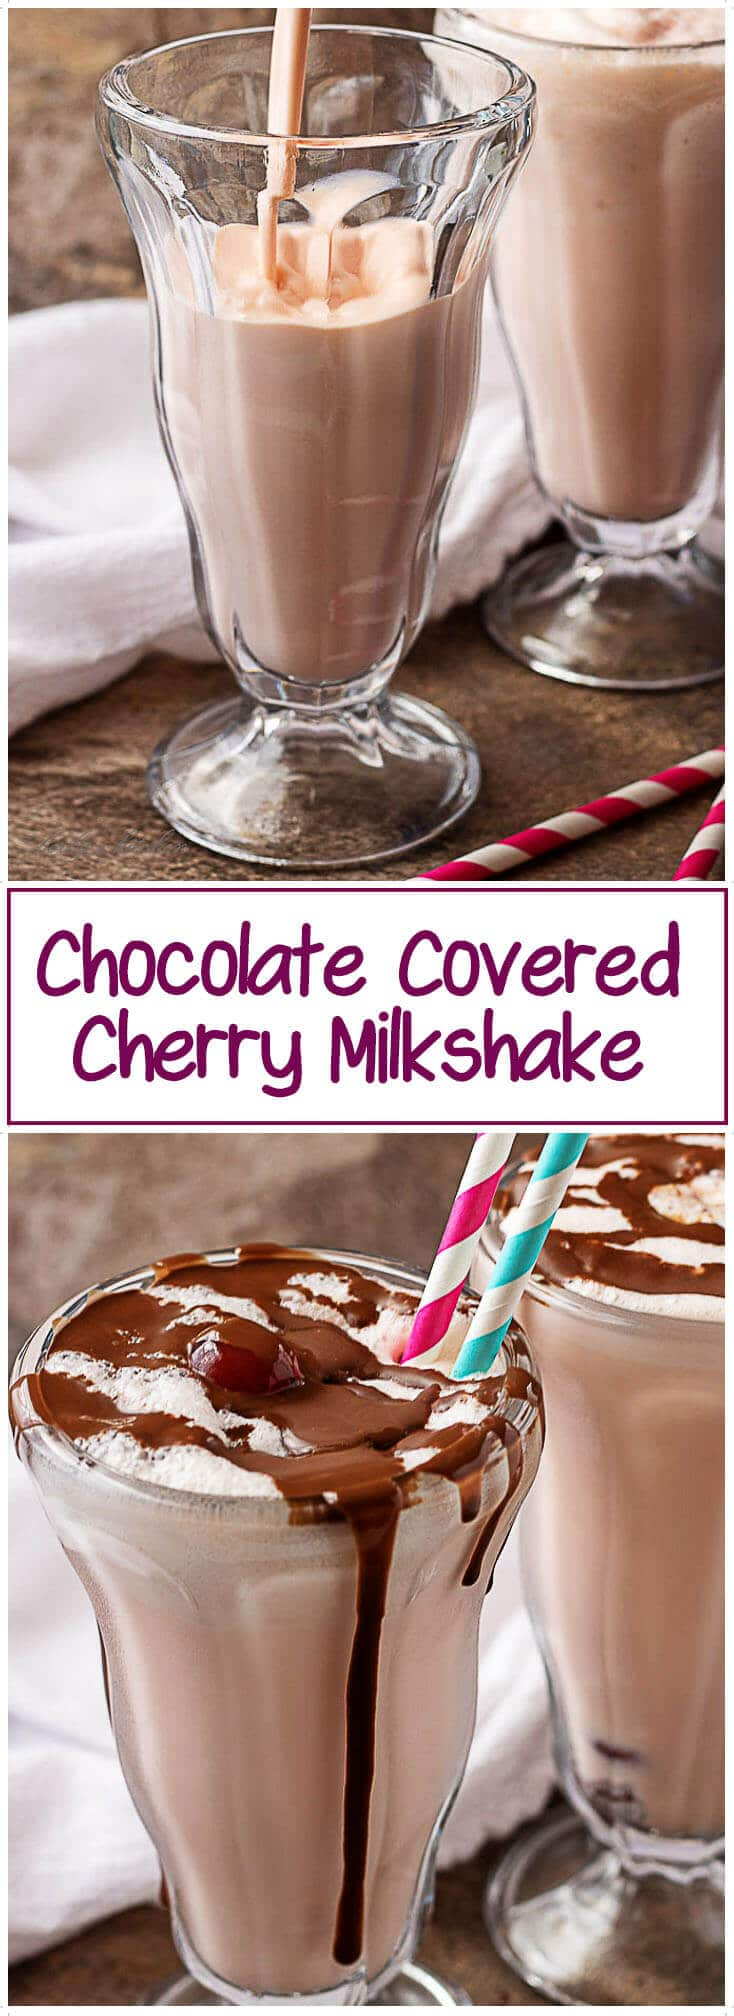 The chocolate covered cherry milkshake recipe, a shot of the finished shakes and a photo of the shake being poured into a glass.